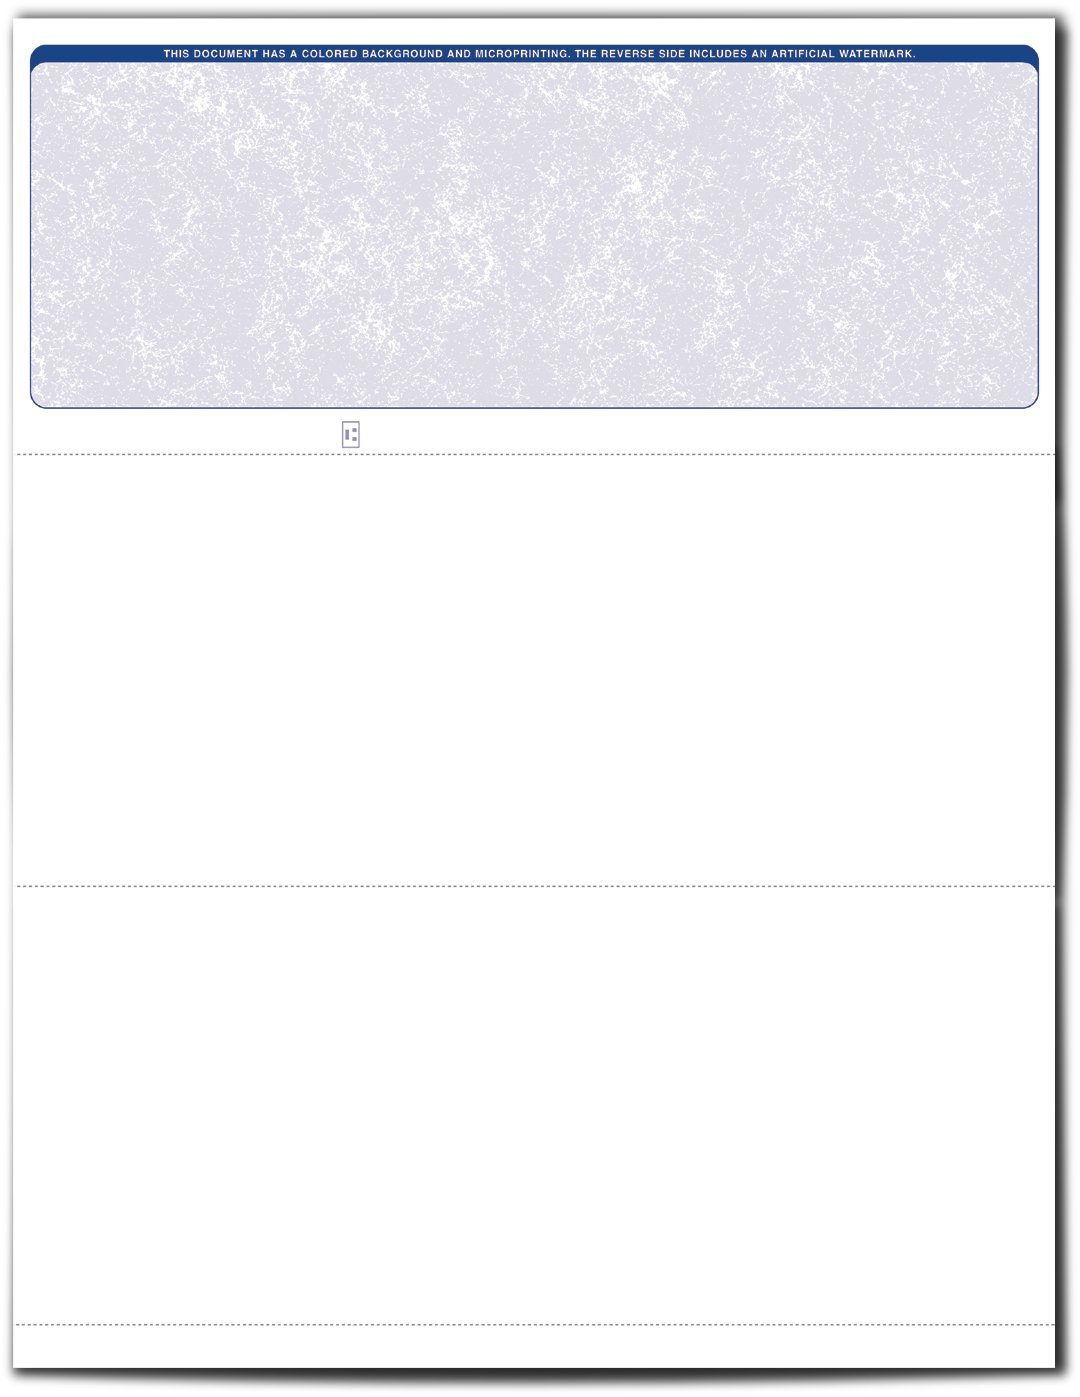 VersaCheck ValueChex Blank Check Paper - Form #1000 Business Voucher Check on Top - Blue - Classic - 1000 Sheets/1000 Checks by VersaCheck Air